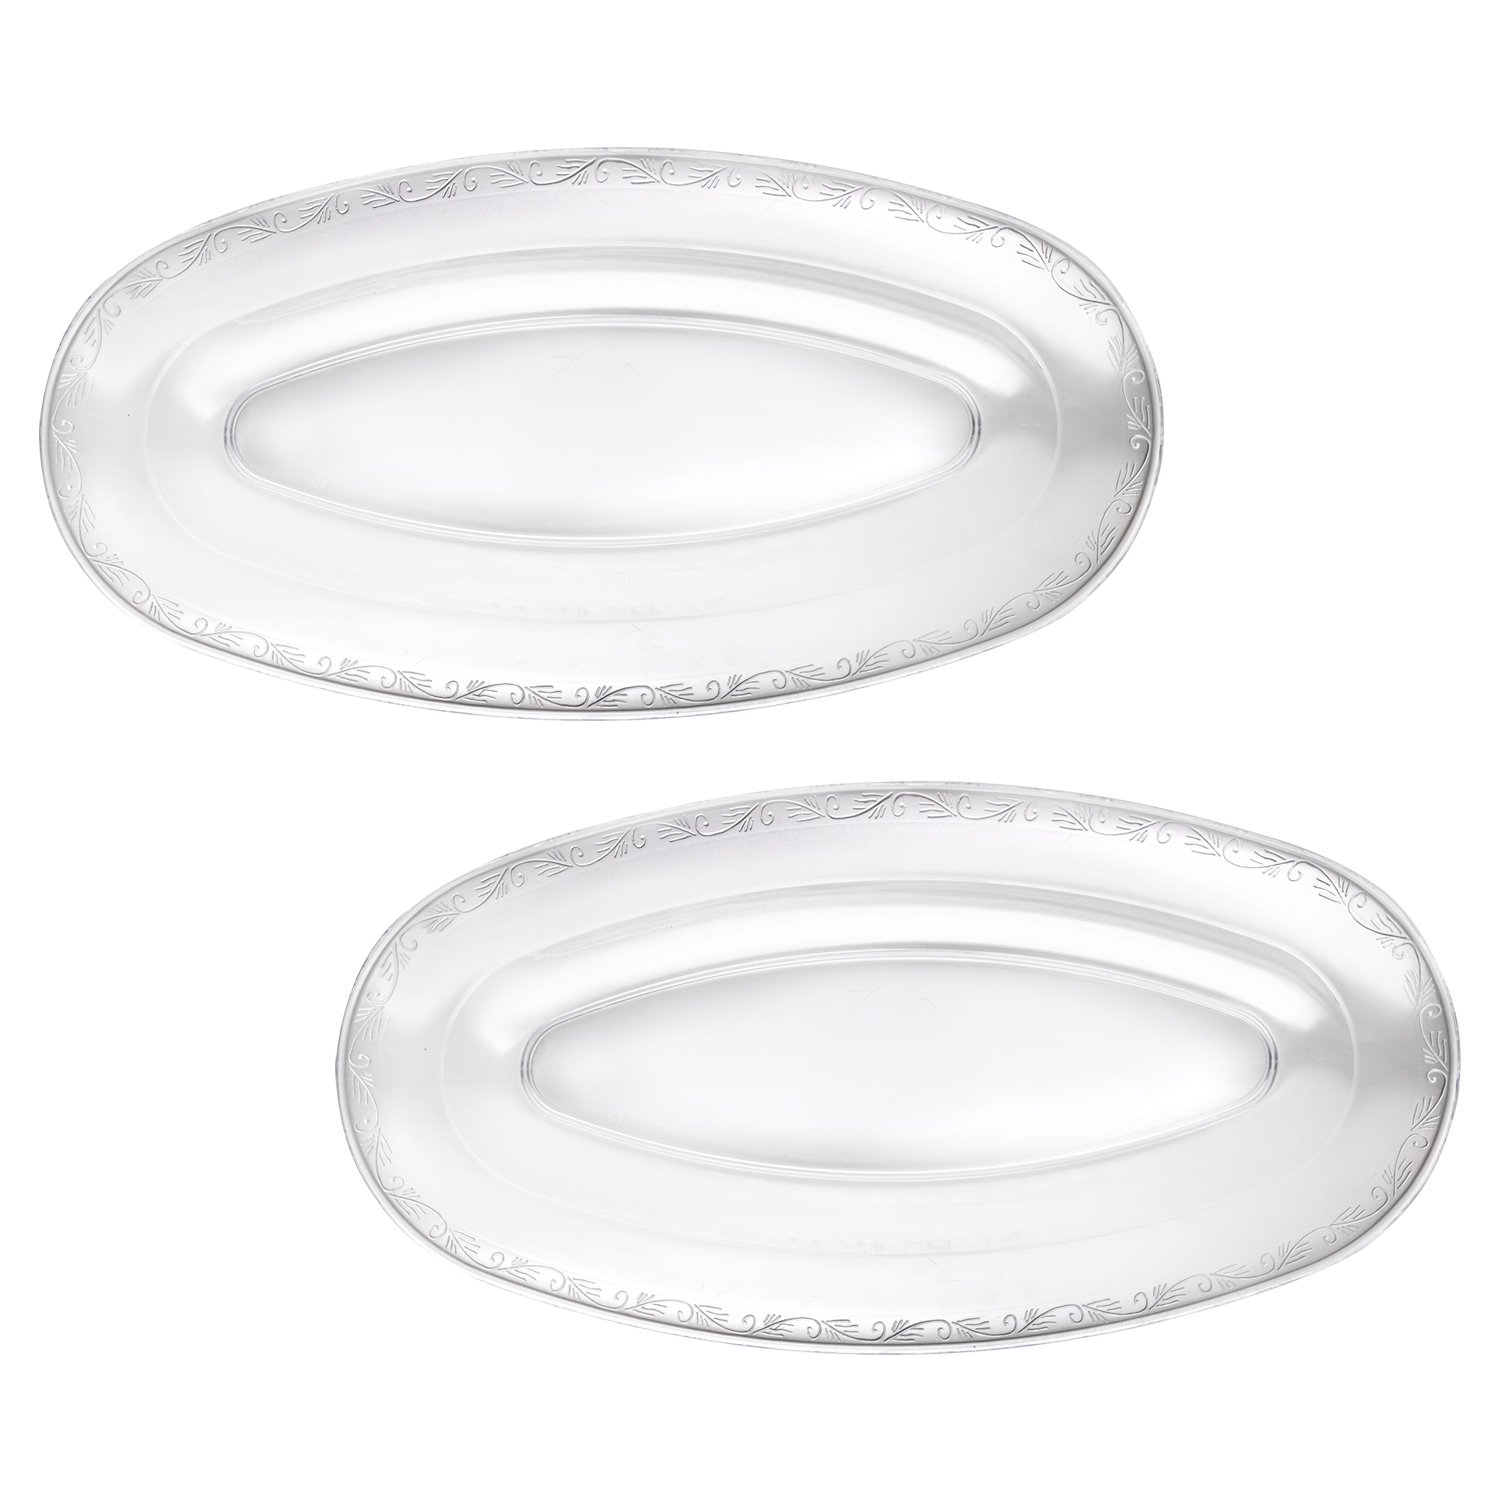 Party Essentials N207105 Hard Plastic Oval Serving Trays 20.75 X 10.5 Clear